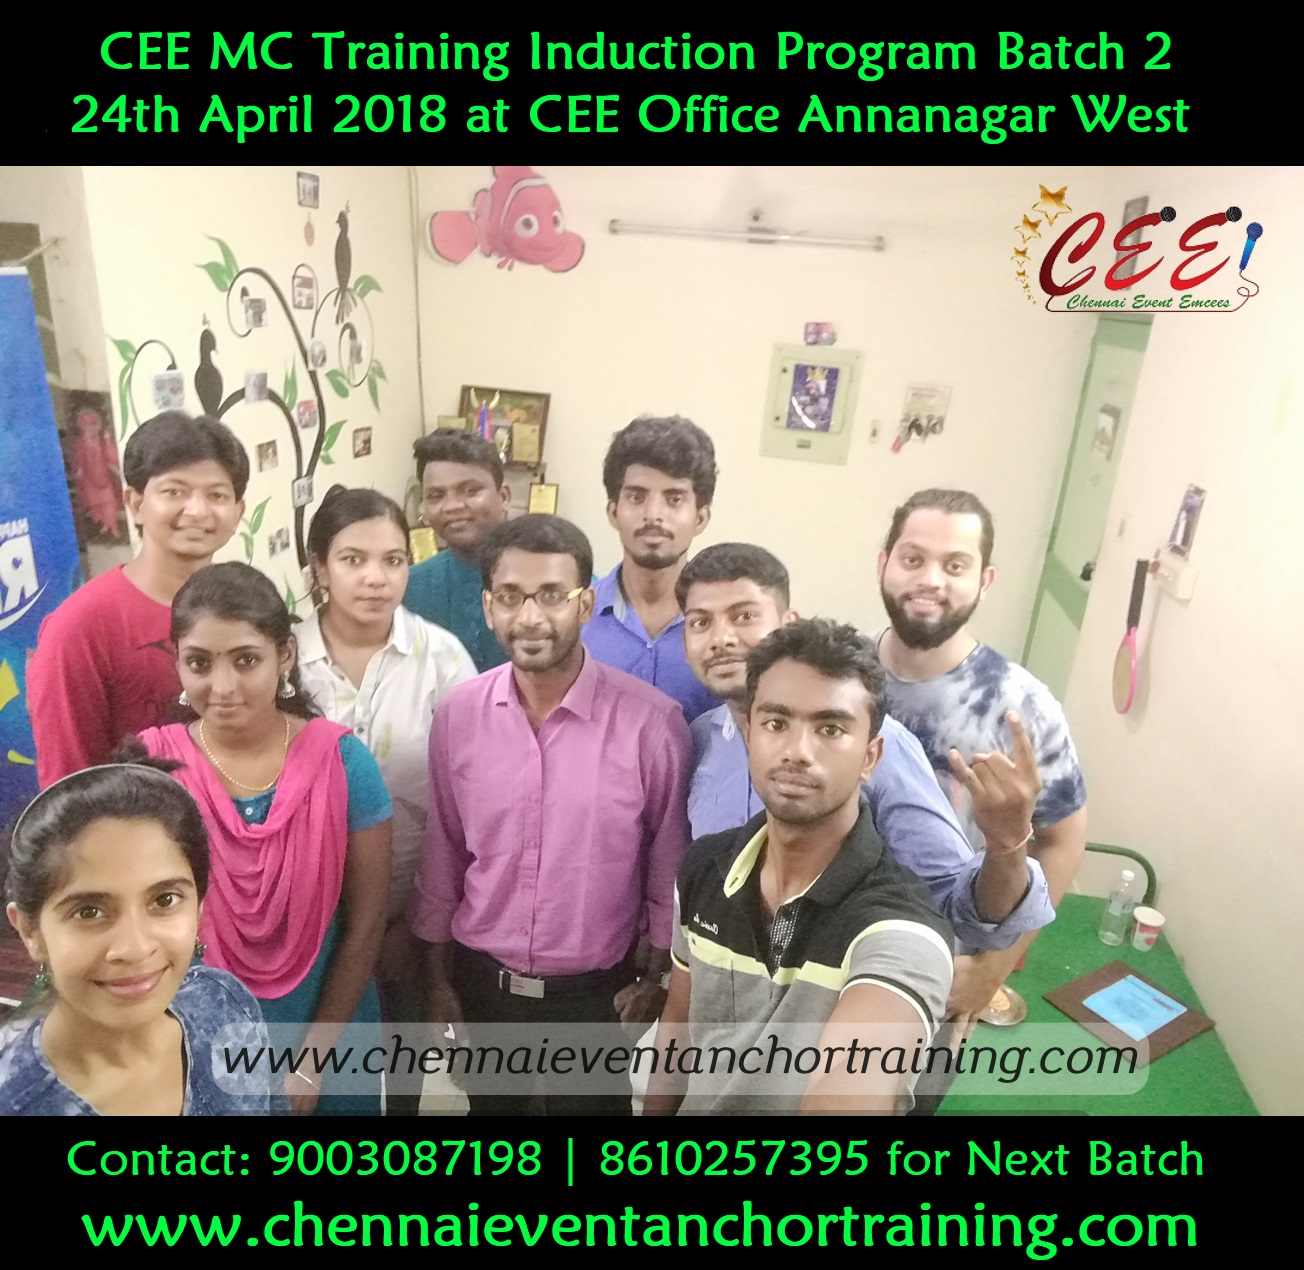 Photos and Videos: CEE MC Training Induction Program and Networking Meeting Batch 2 at Annanagar